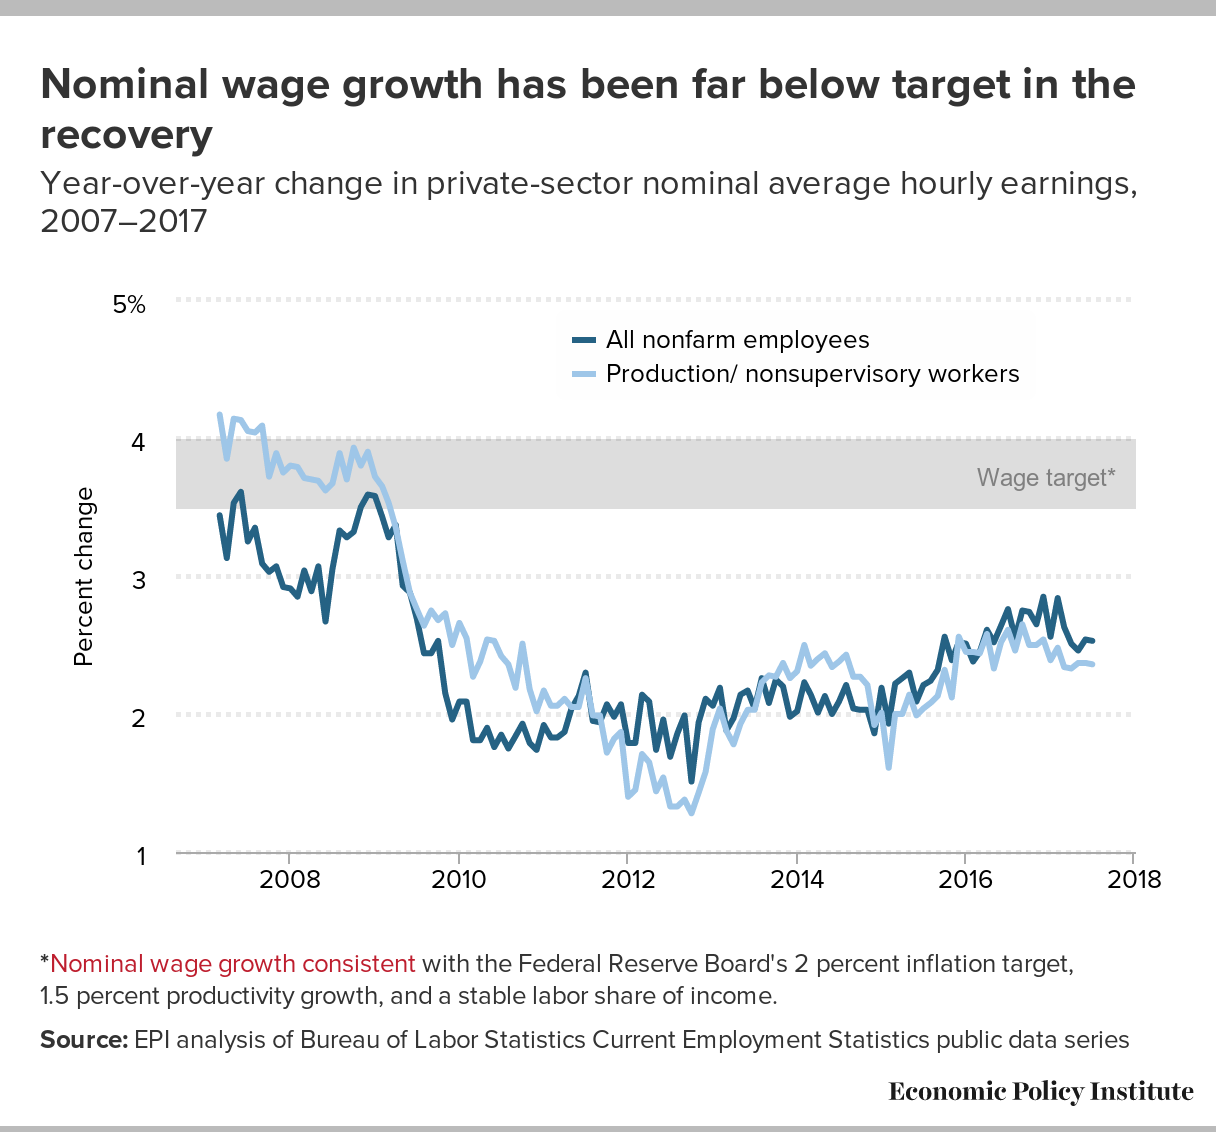 Wage growth in the US has remained sluggish since the global financial crisis